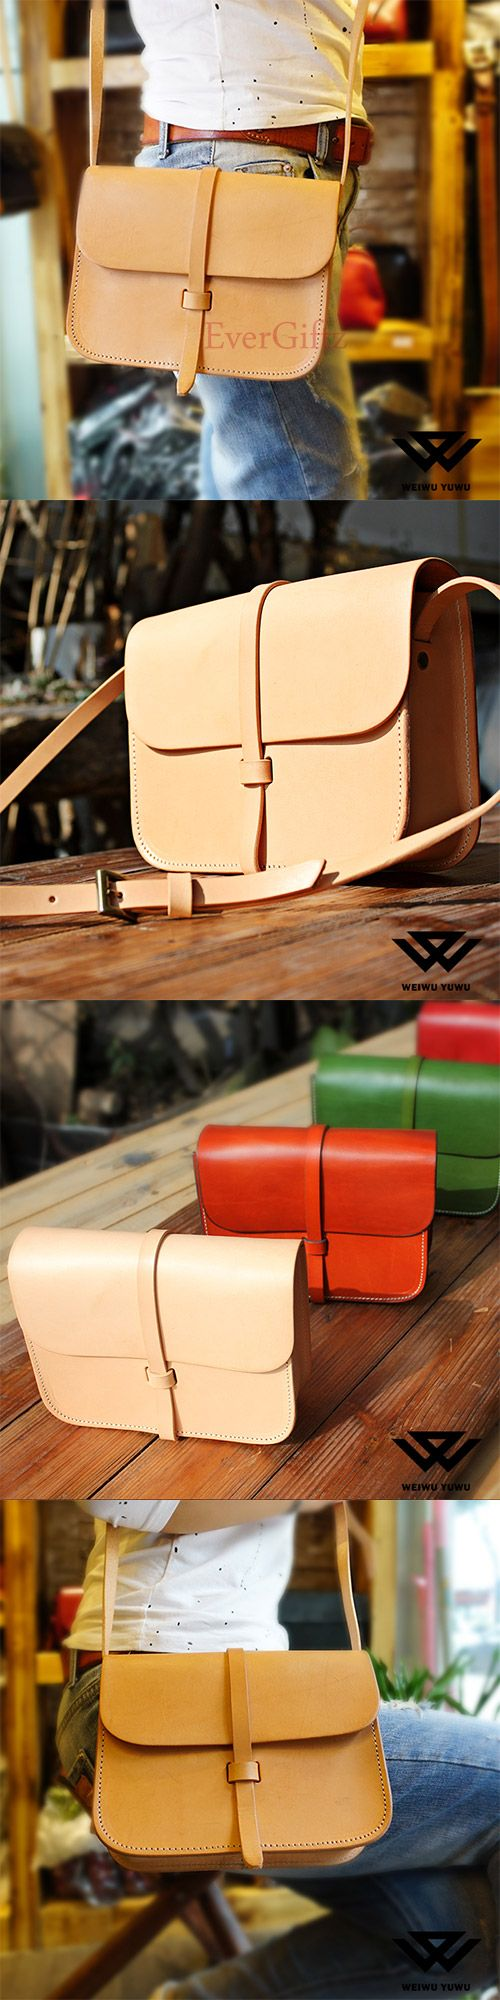 Handmade leather vintage women stachel bag shoulder bag crossbody bag